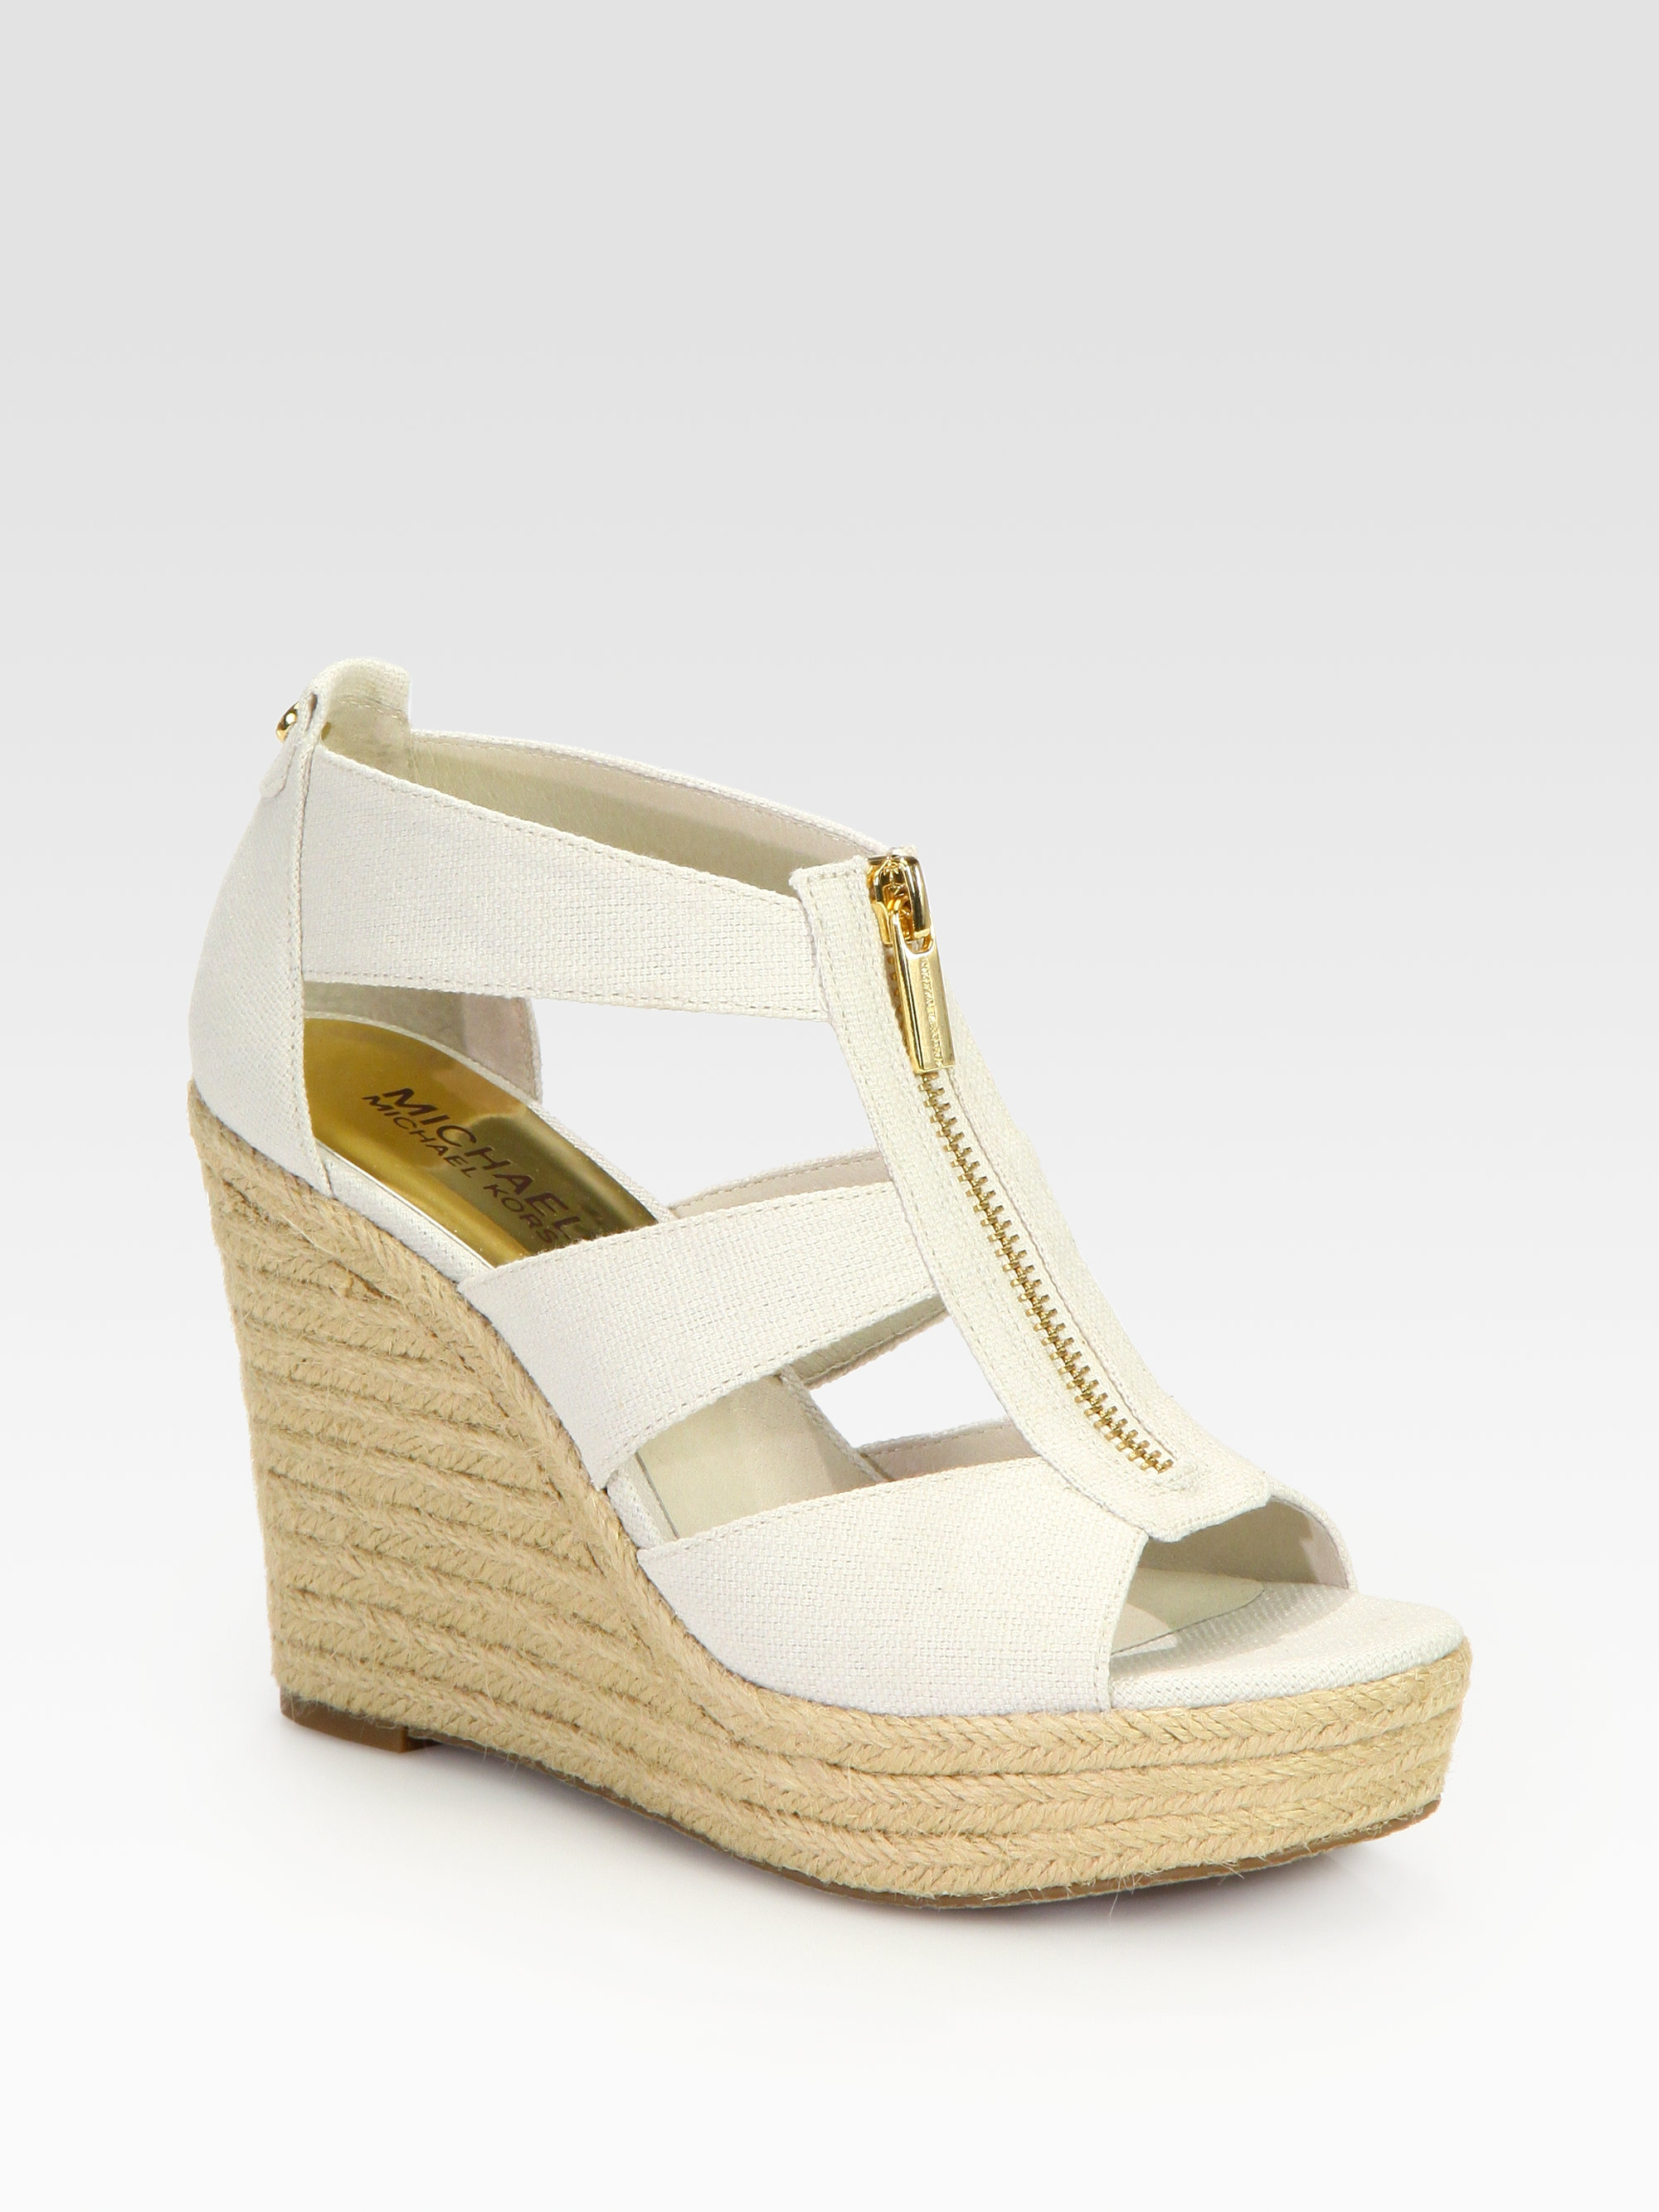 b94448e9d840 Lyst - MICHAEL Michael Kors Damita Canvas Espadrille Wedges in White